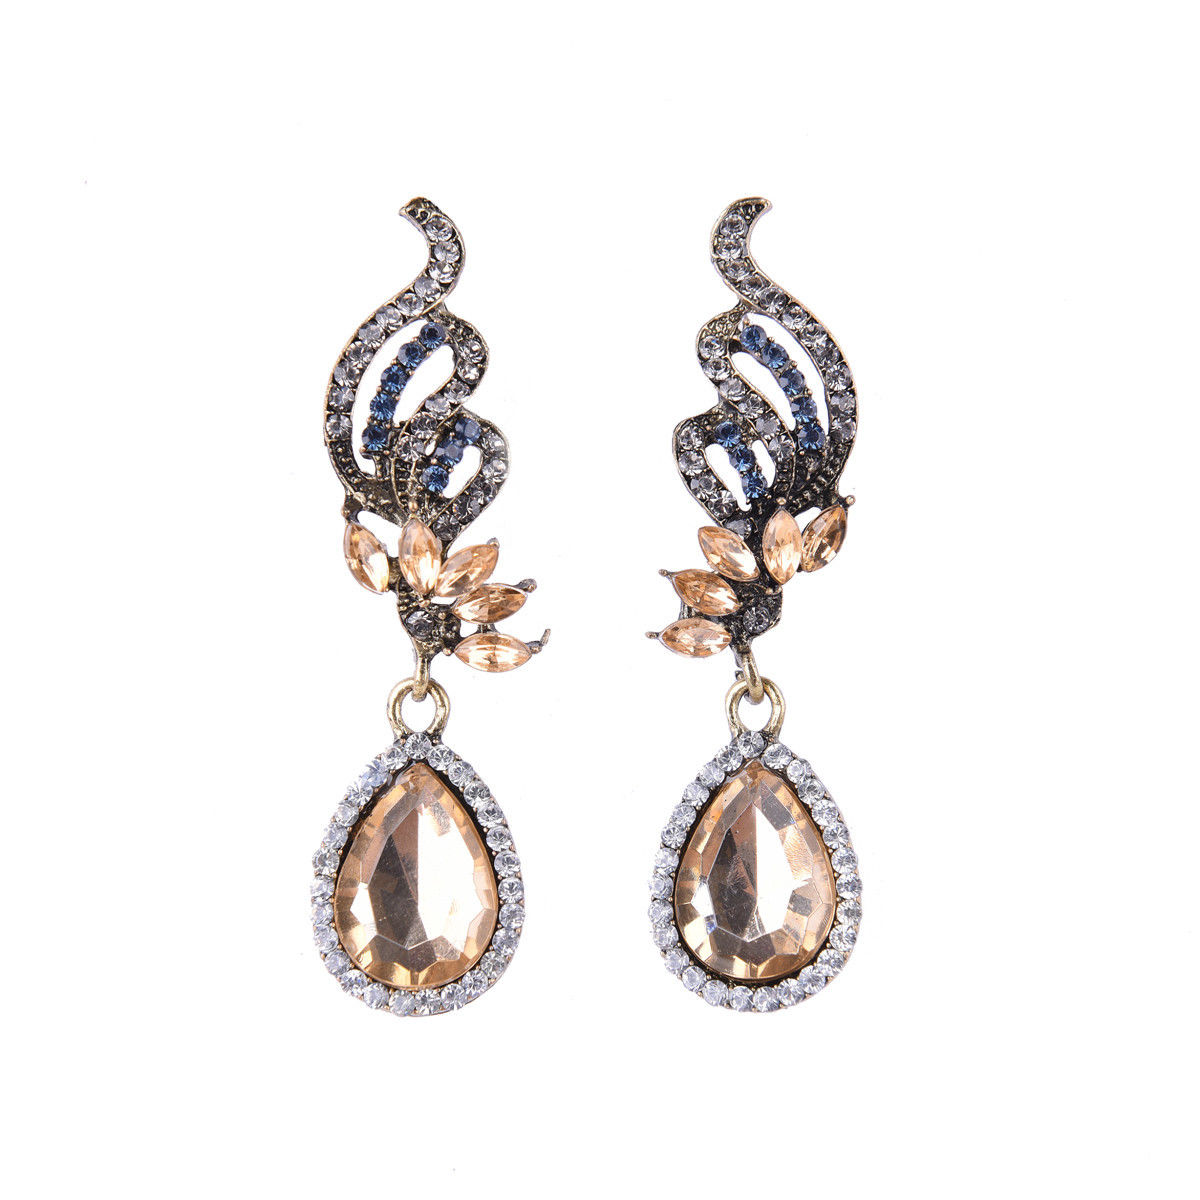 jaan-imports - Honey Color Tear Drop Earrings - Khoobsurat Gift Shop - Earrings